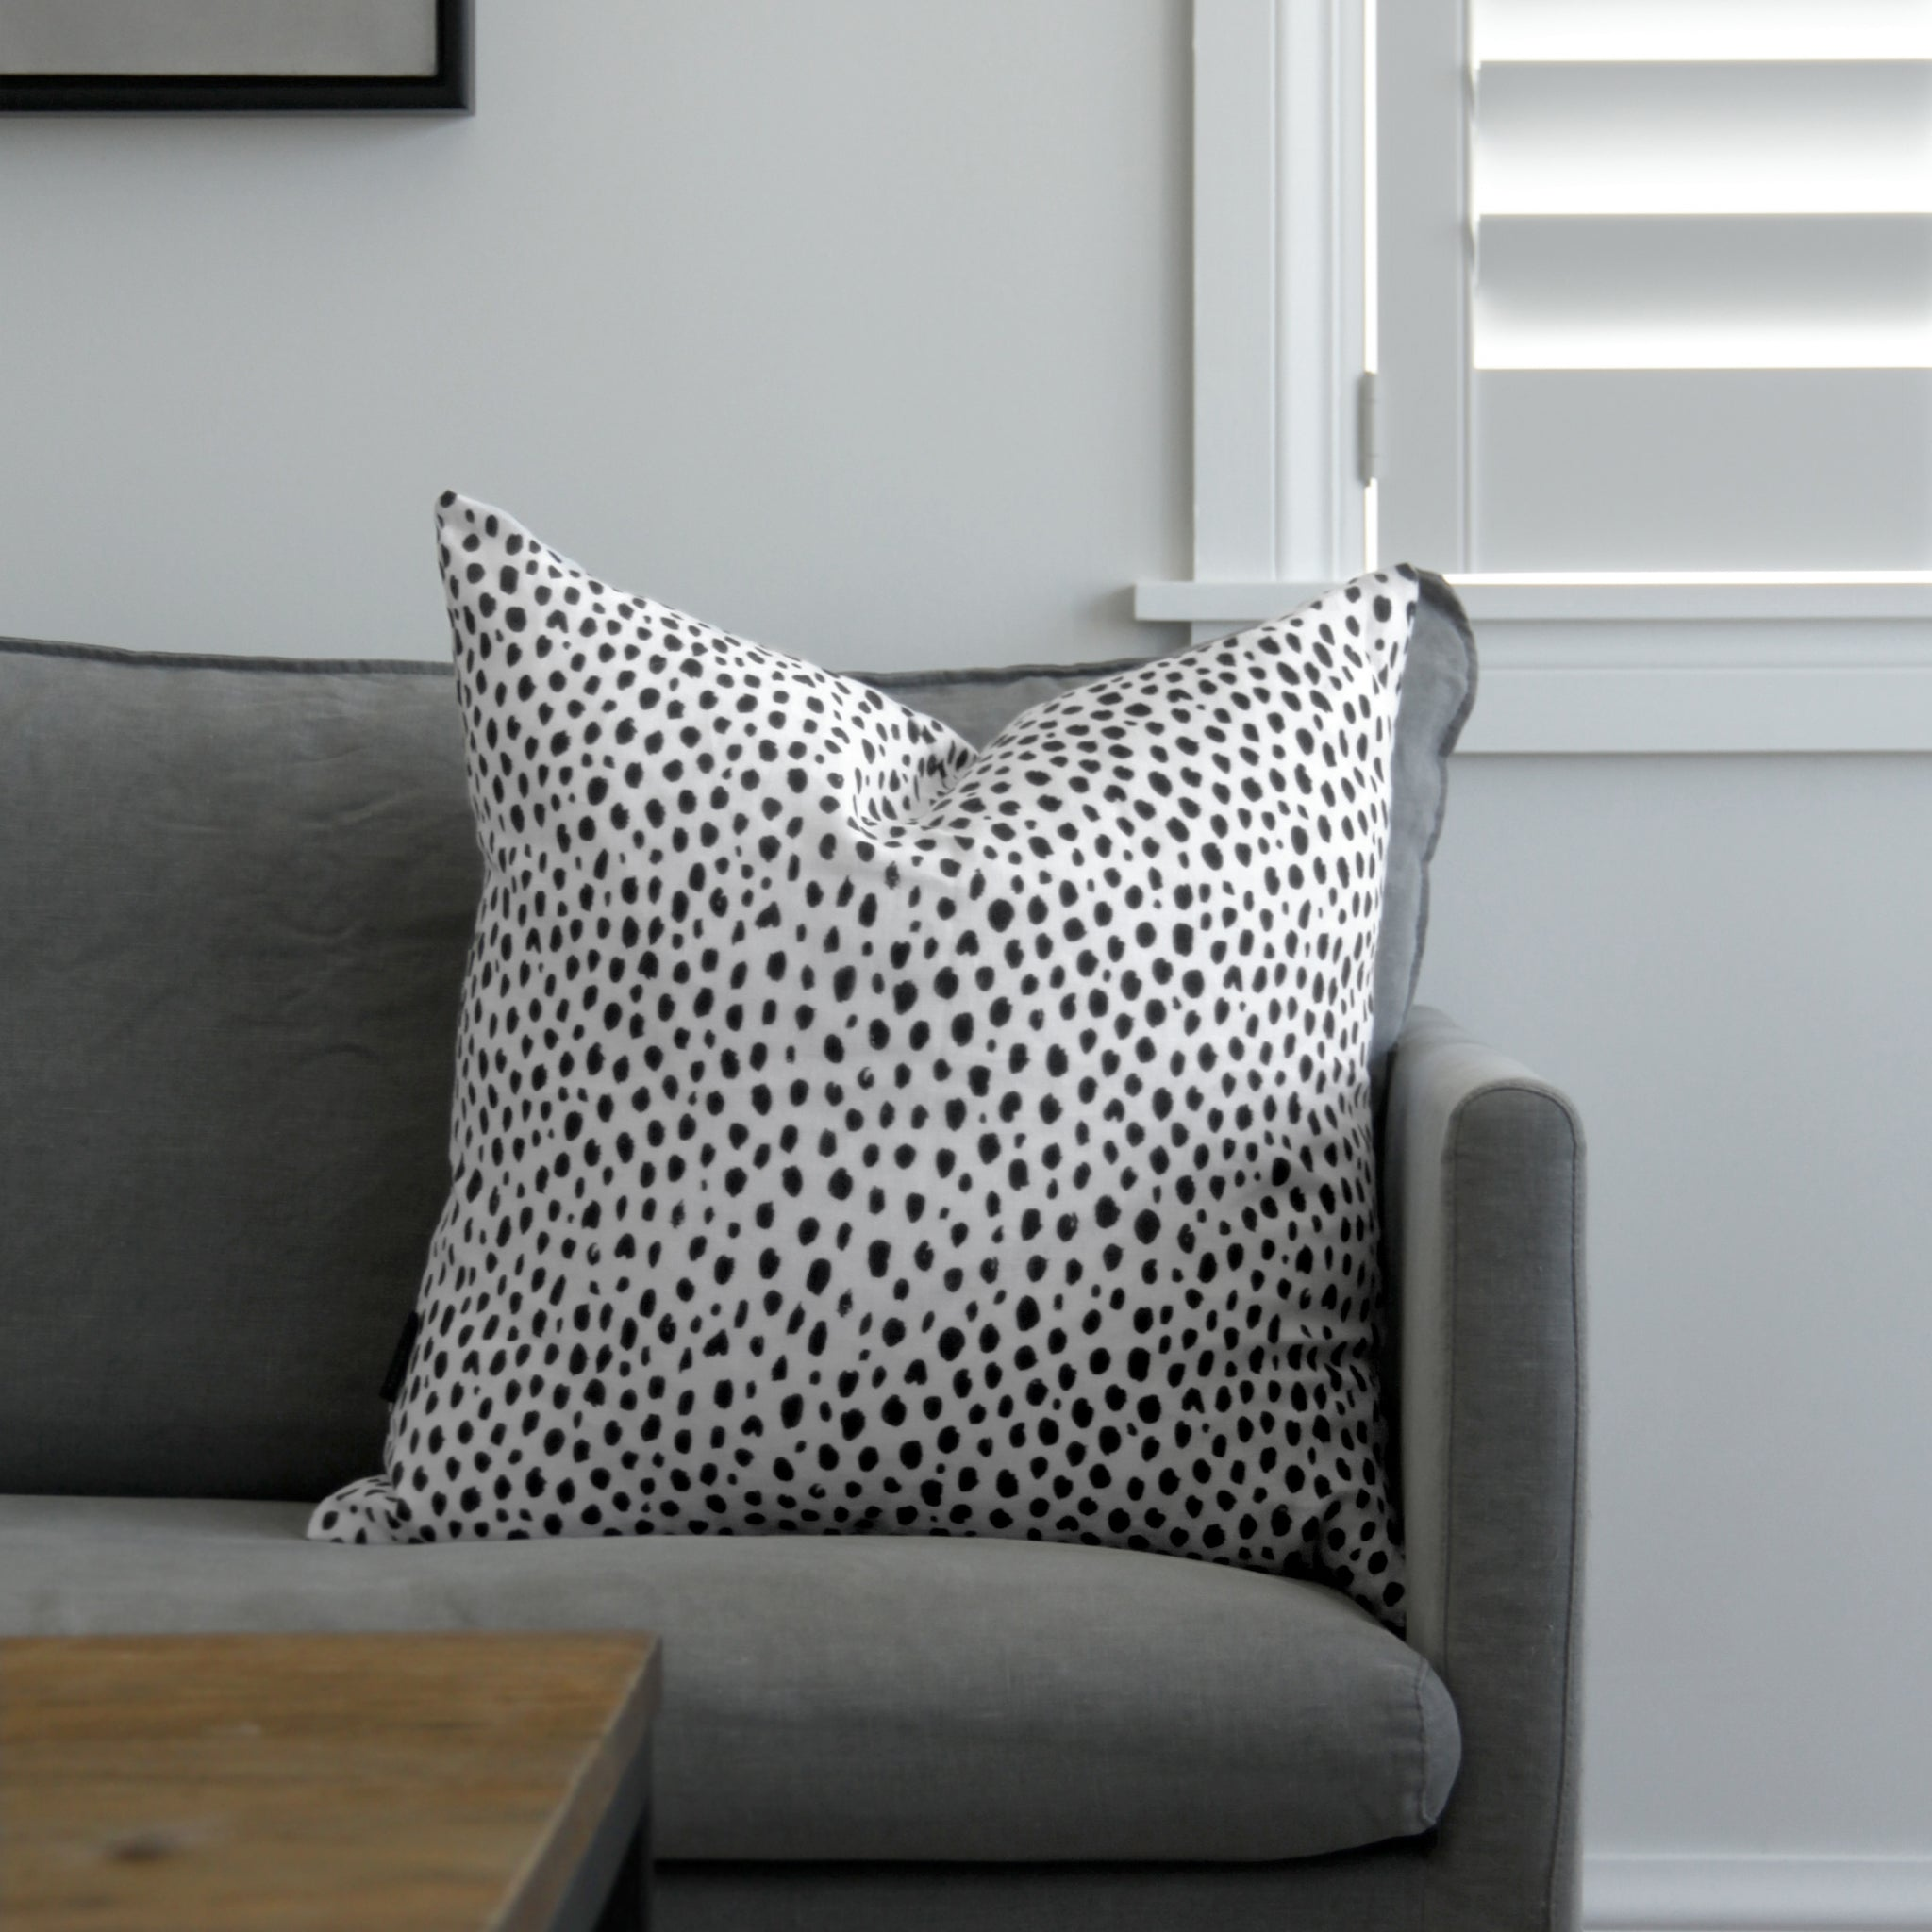 sofa styling with linen cushion in animal print